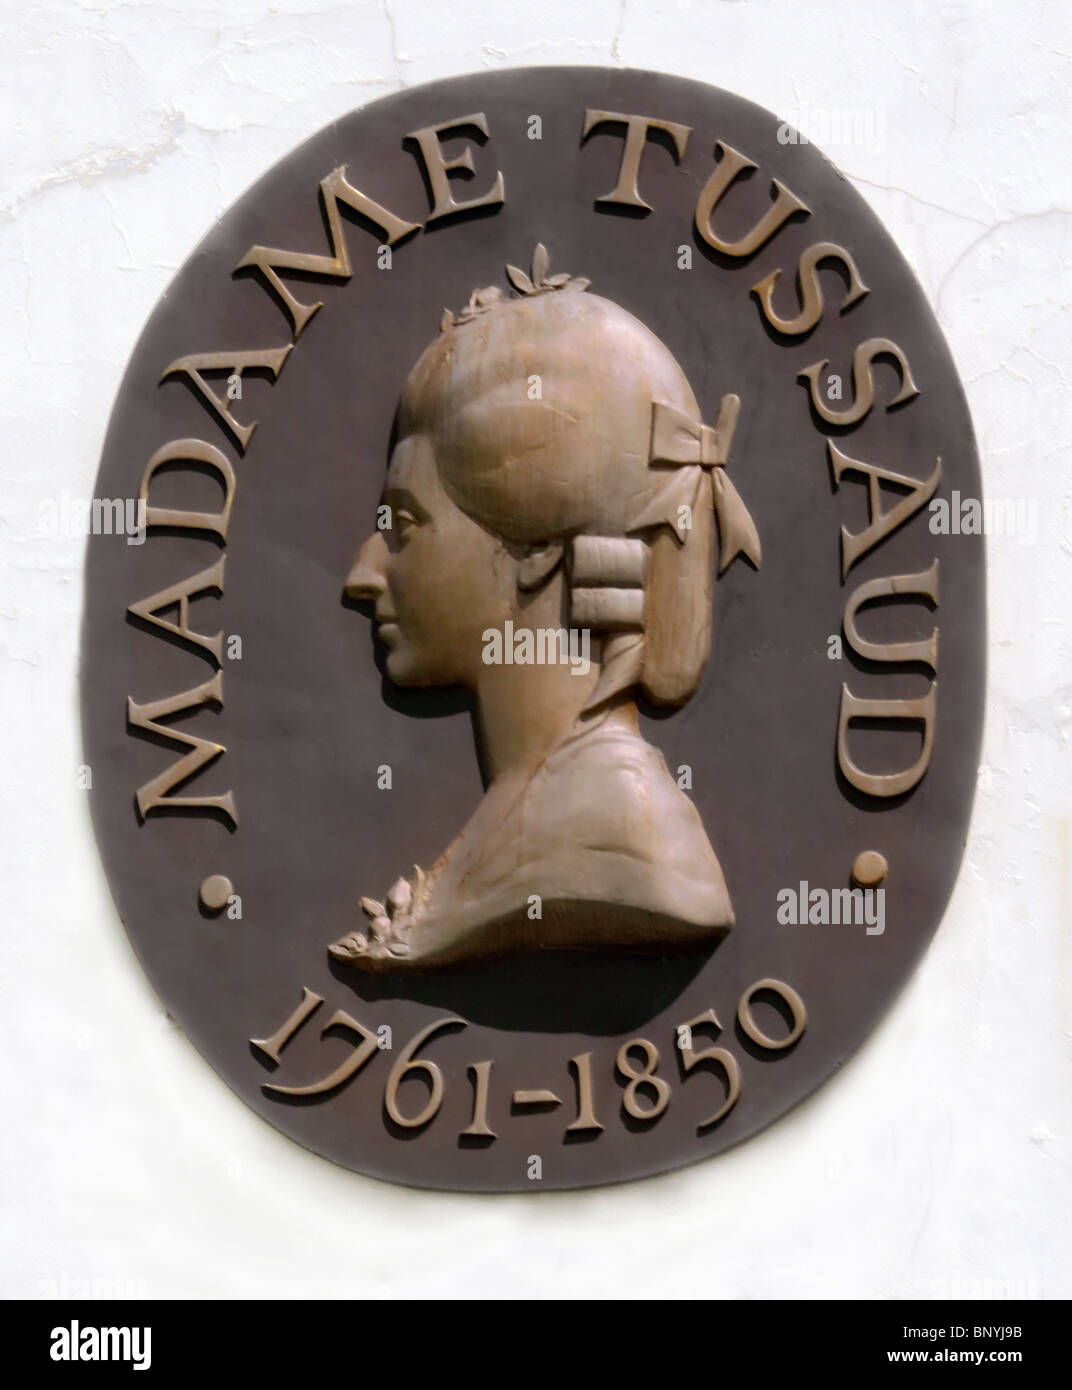 plaque of madame tussaud 1761 - 1850 wax work artist founded the madame tussard musum in london - Stock Image